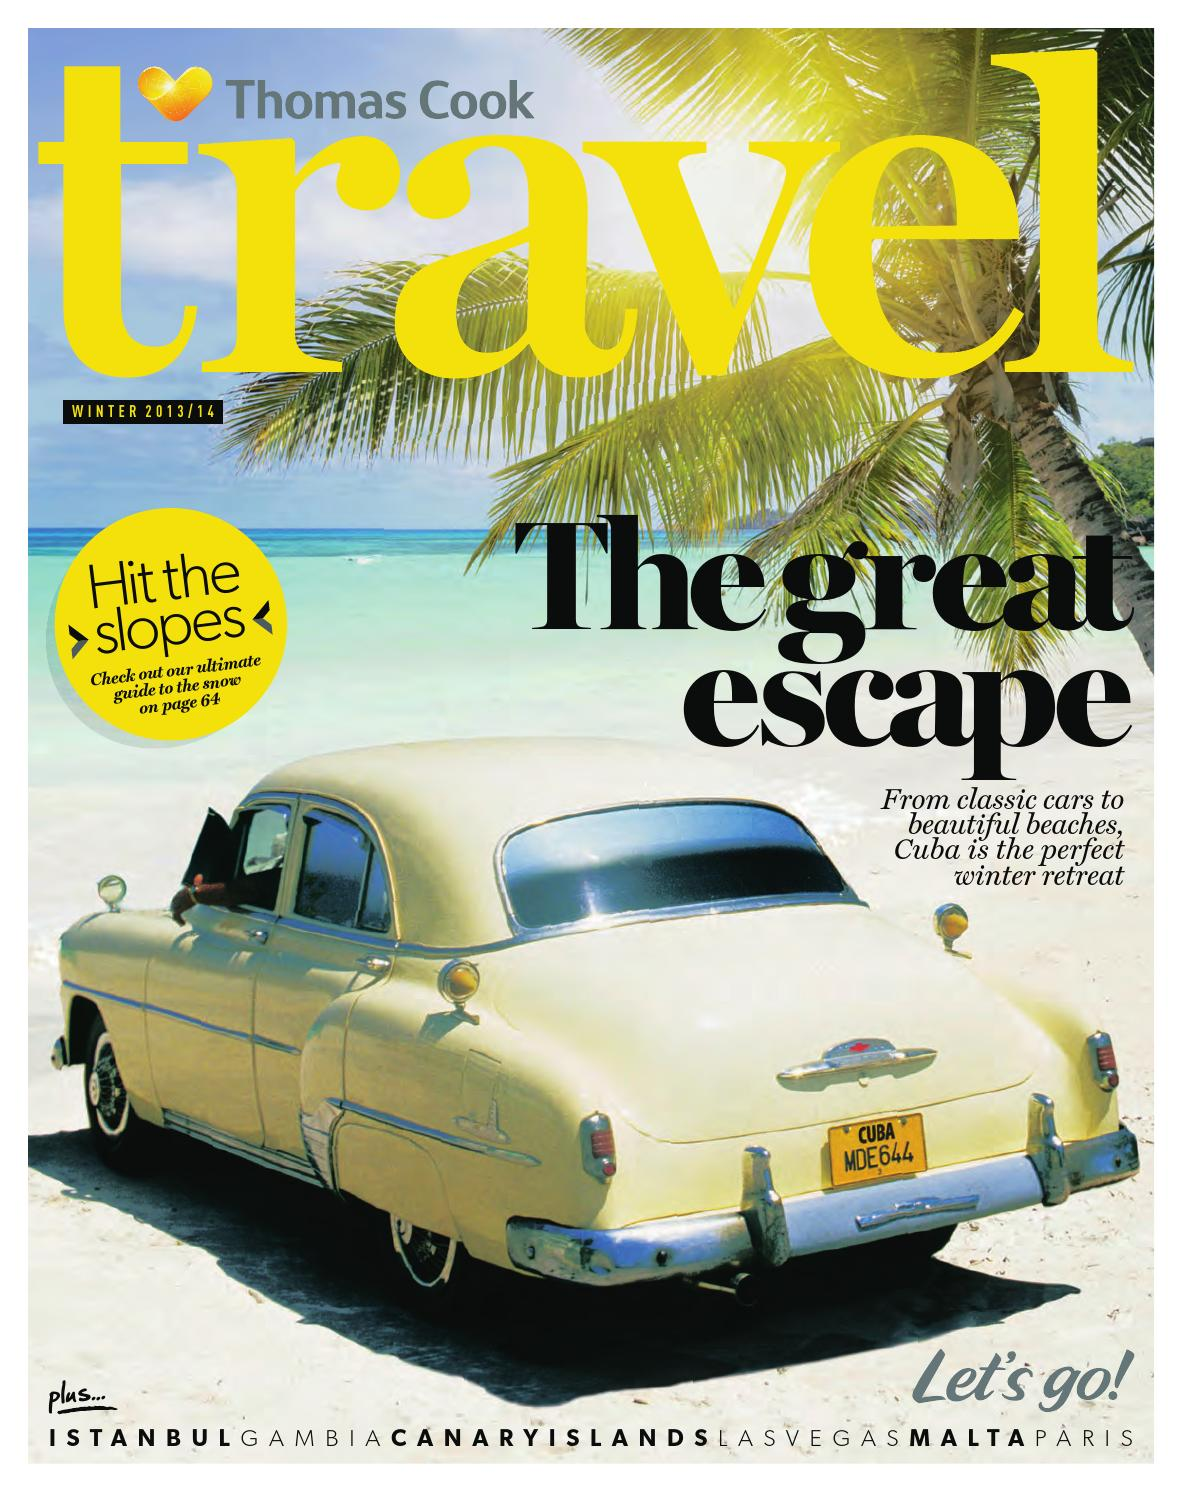 Thomas Cook Travel - Winter 2013 by Bookletia - issuu d9d8fed9e6b0